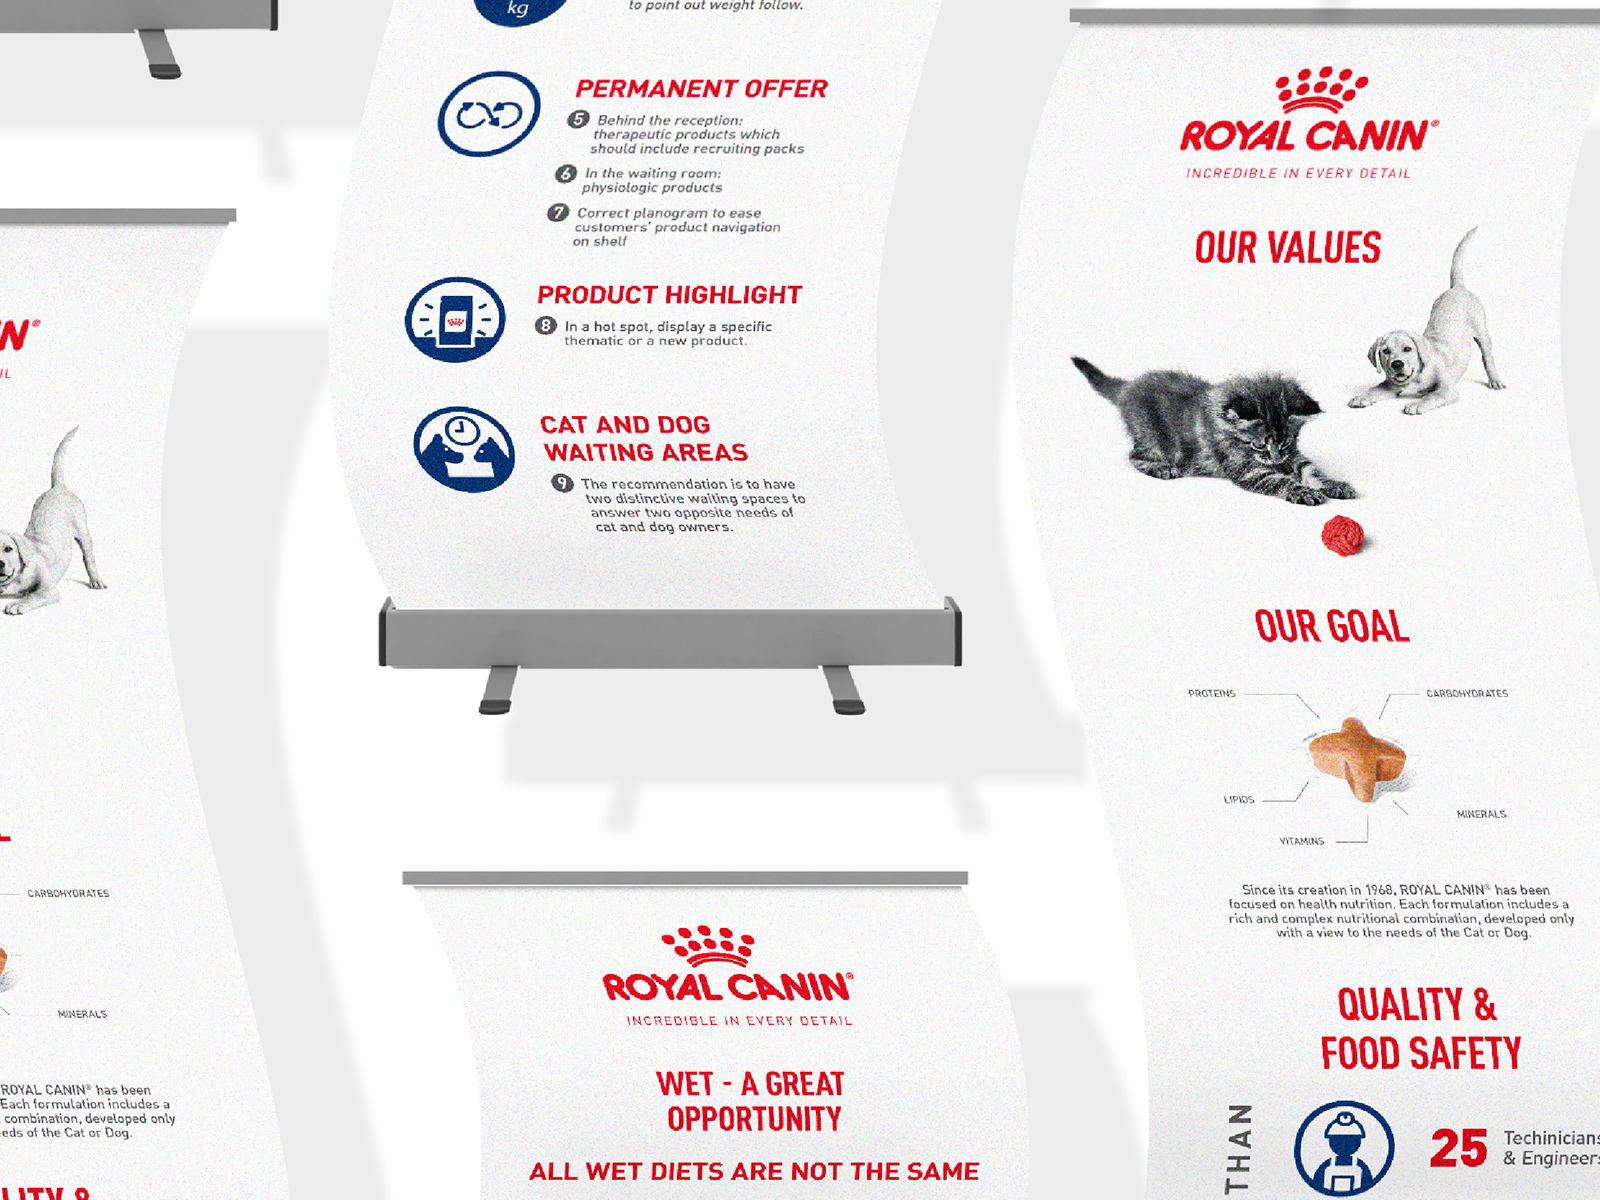 Royal Canin branding bunting that speaks of their product USPs and brand values as well as goals